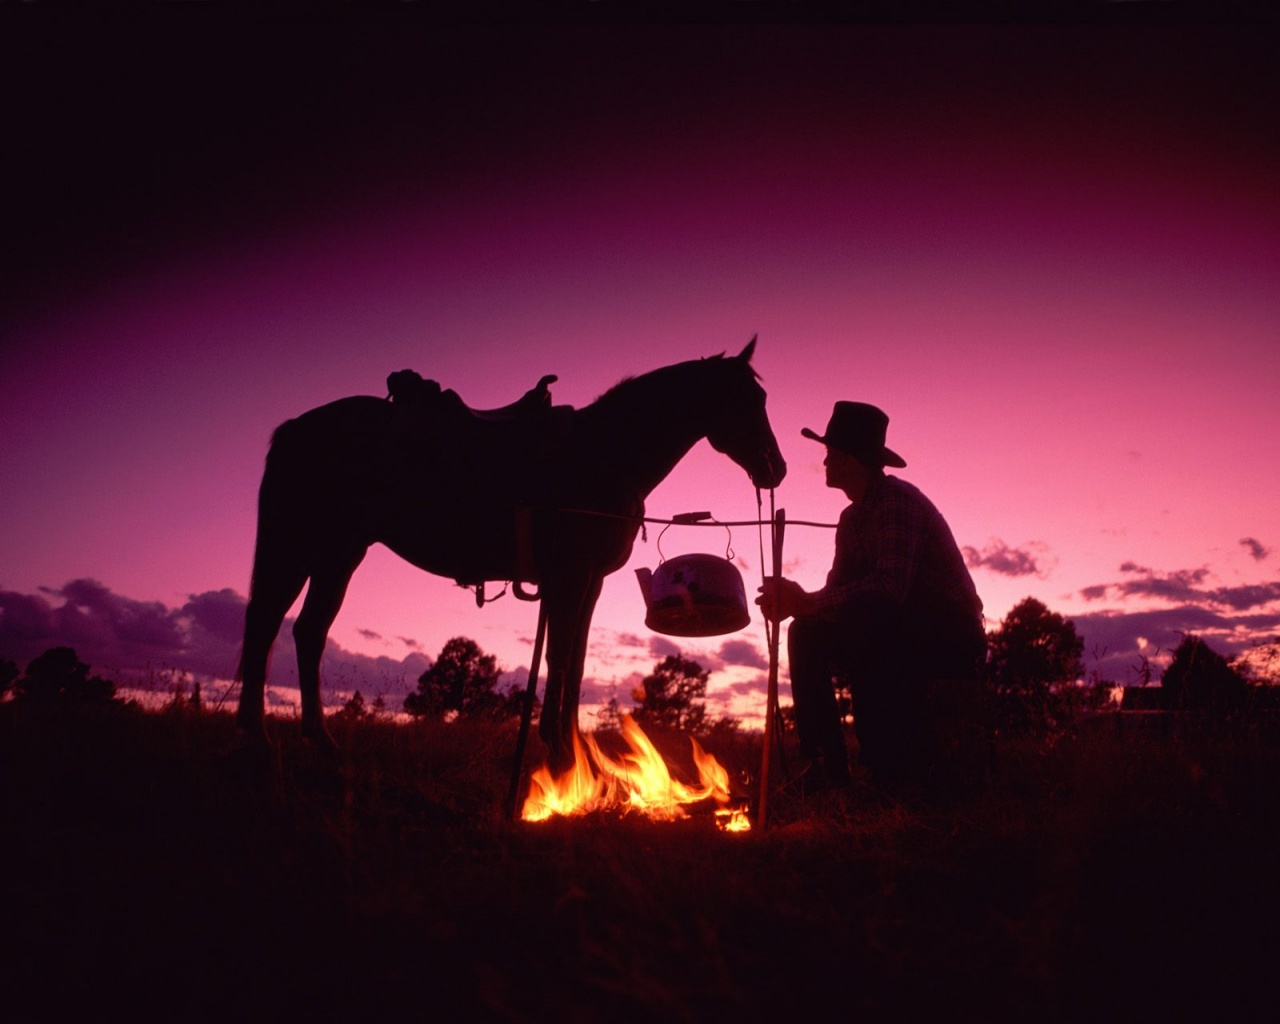 Cool   Wallpaper Horse Country - cowboy-and-fire_wallpapers_11374_1280x1024  Pic_667527.jpg